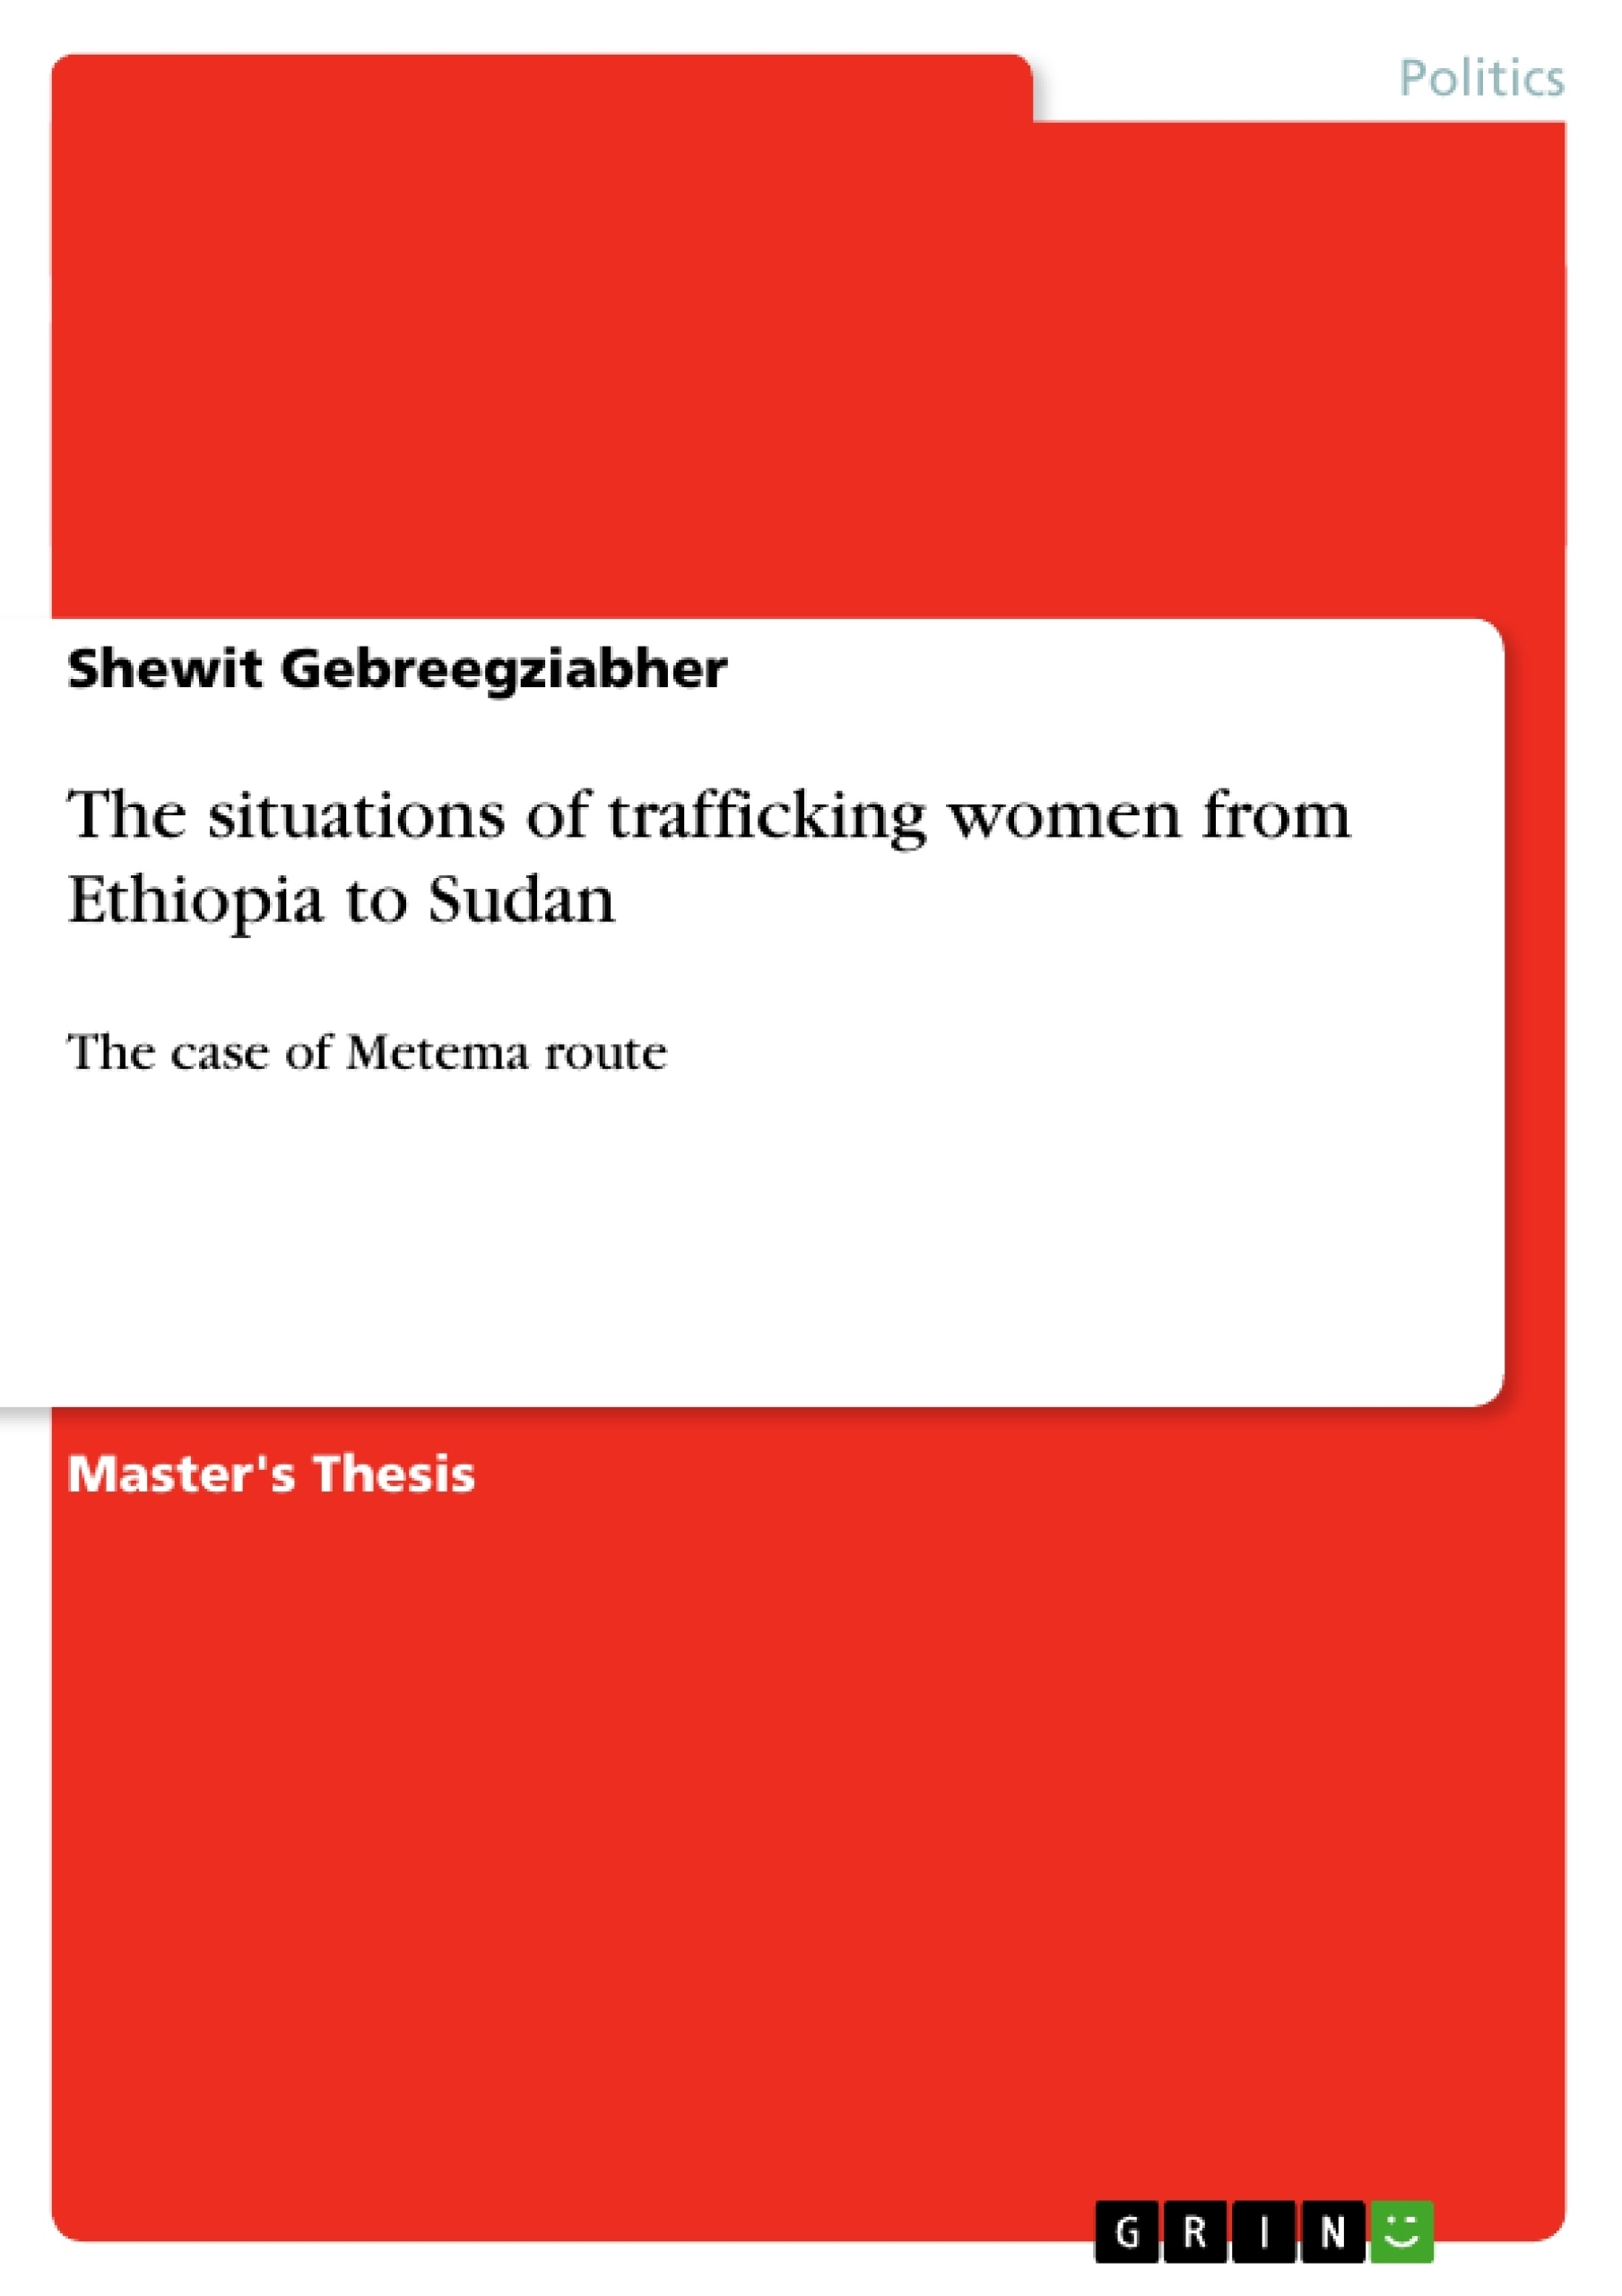 Title: The situations of trafficking women from Ethiopia to Sudan